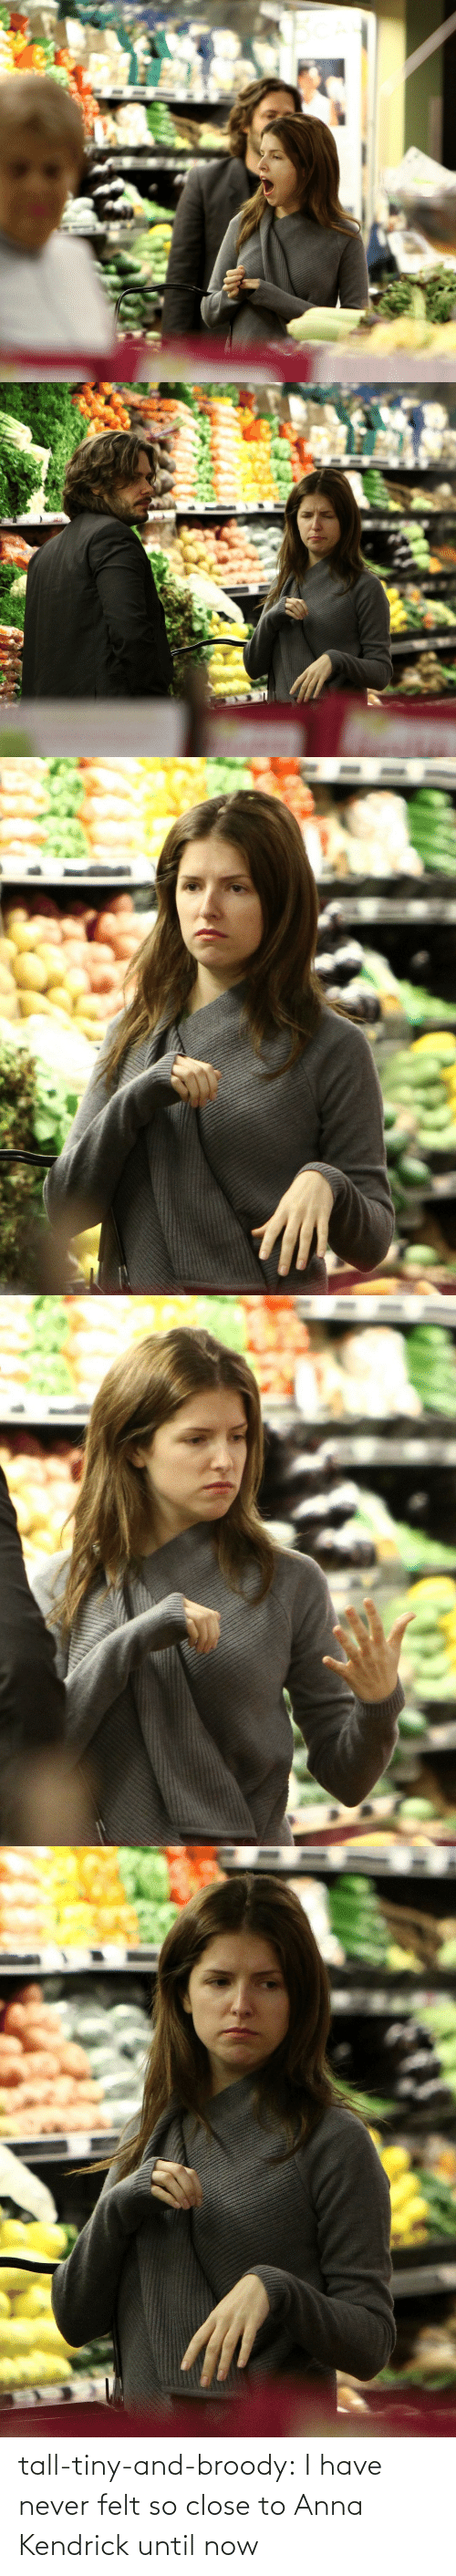 anna kendrick: tall-tiny-and-broody:  I have never felt so close to Anna Kendrick until now